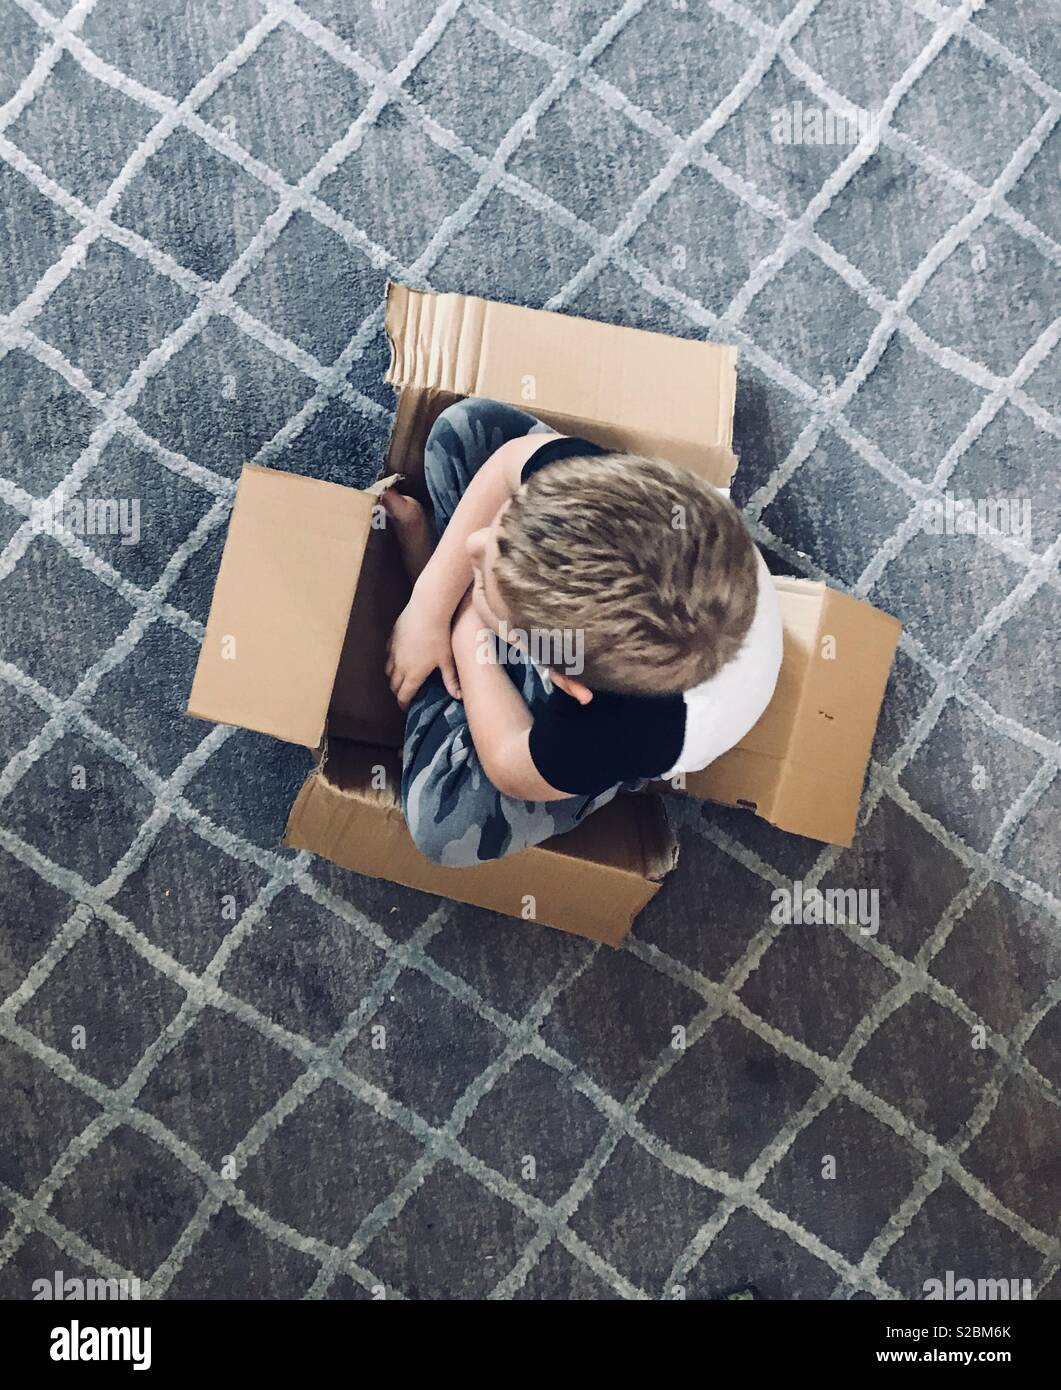 Child sitting in his race car cardboard box watching tv - playing pretend - Stock Image